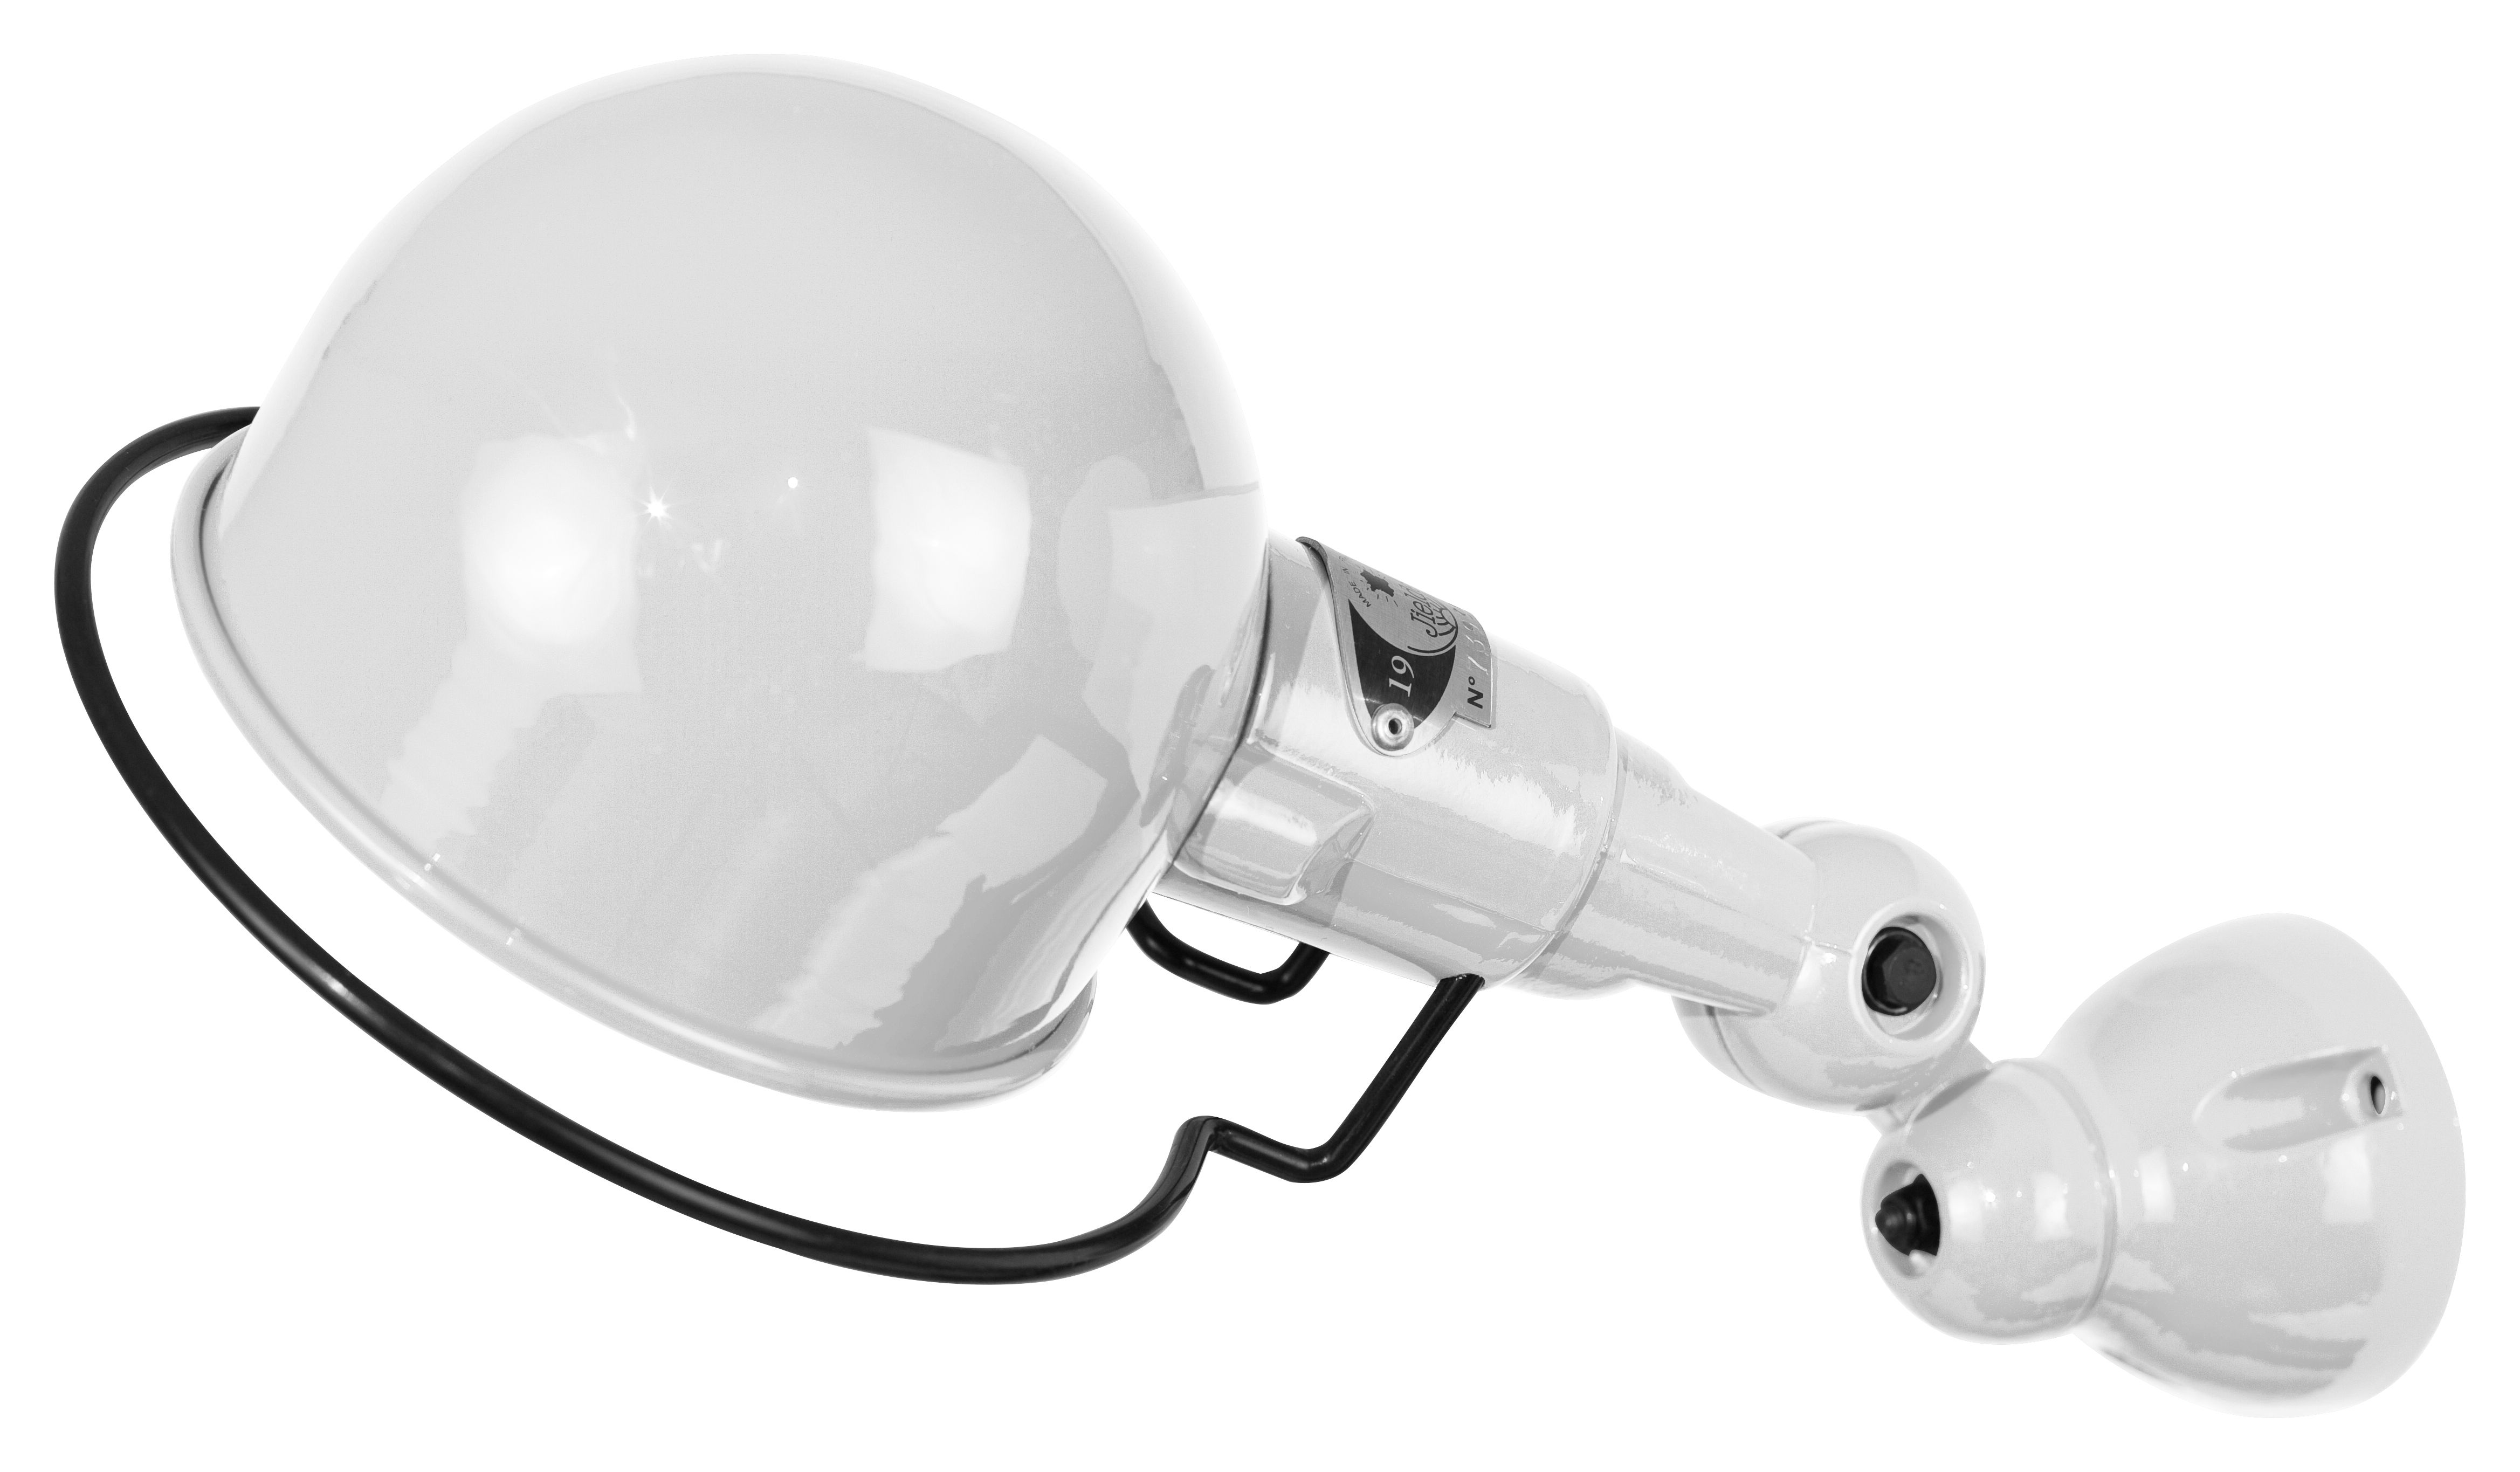 Lighting - Wall Lights - Signal Wall light - Ø 10 cm by Jieldé - Shiny white - Stainless steel